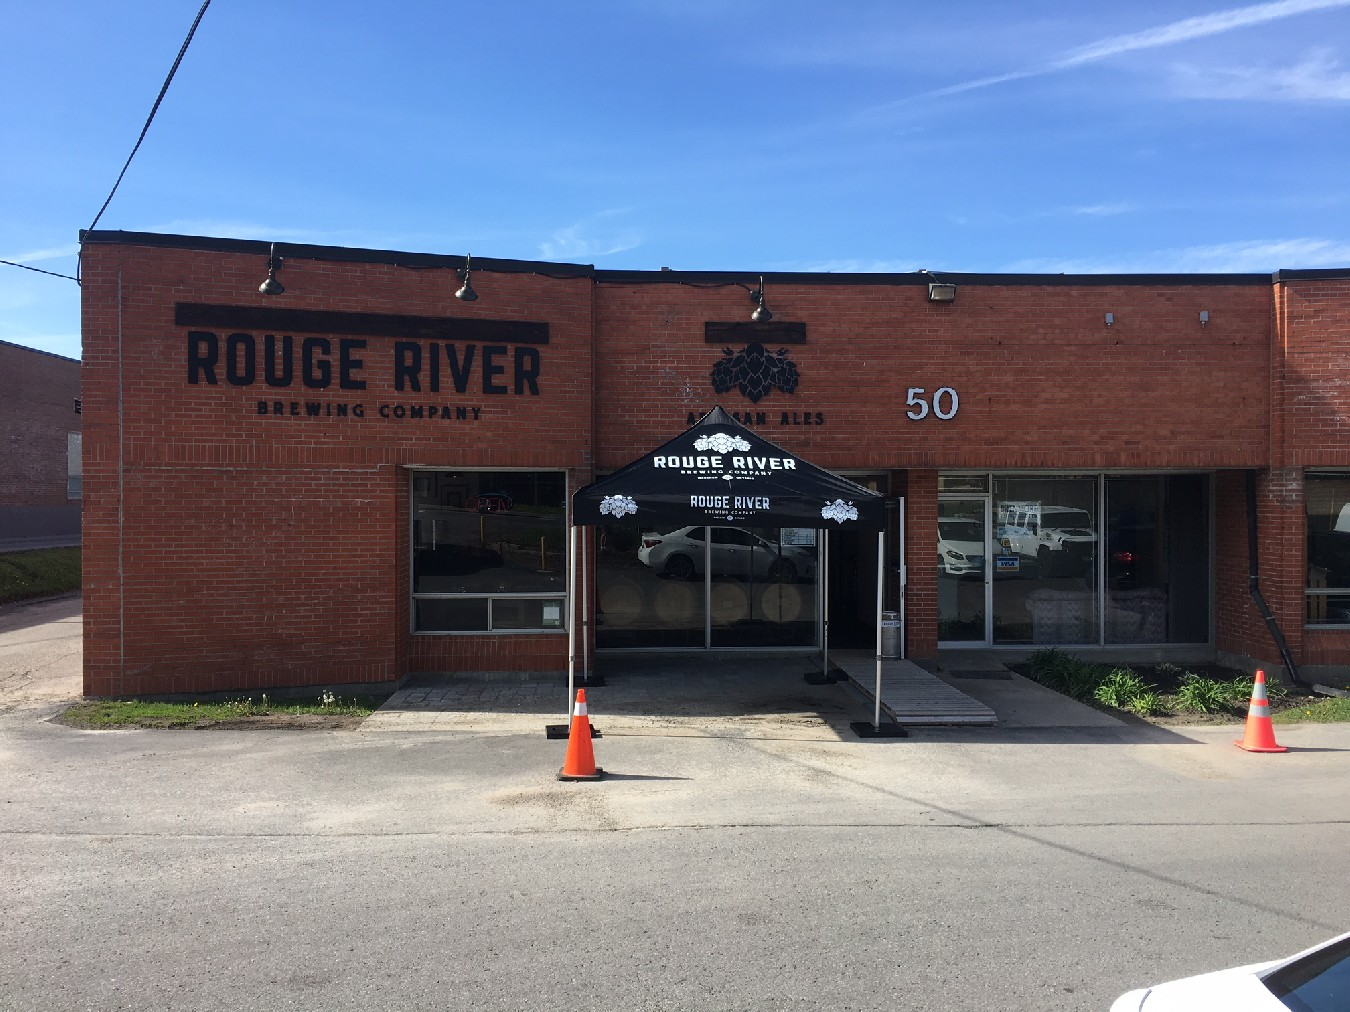 Rouge River Brewing Company